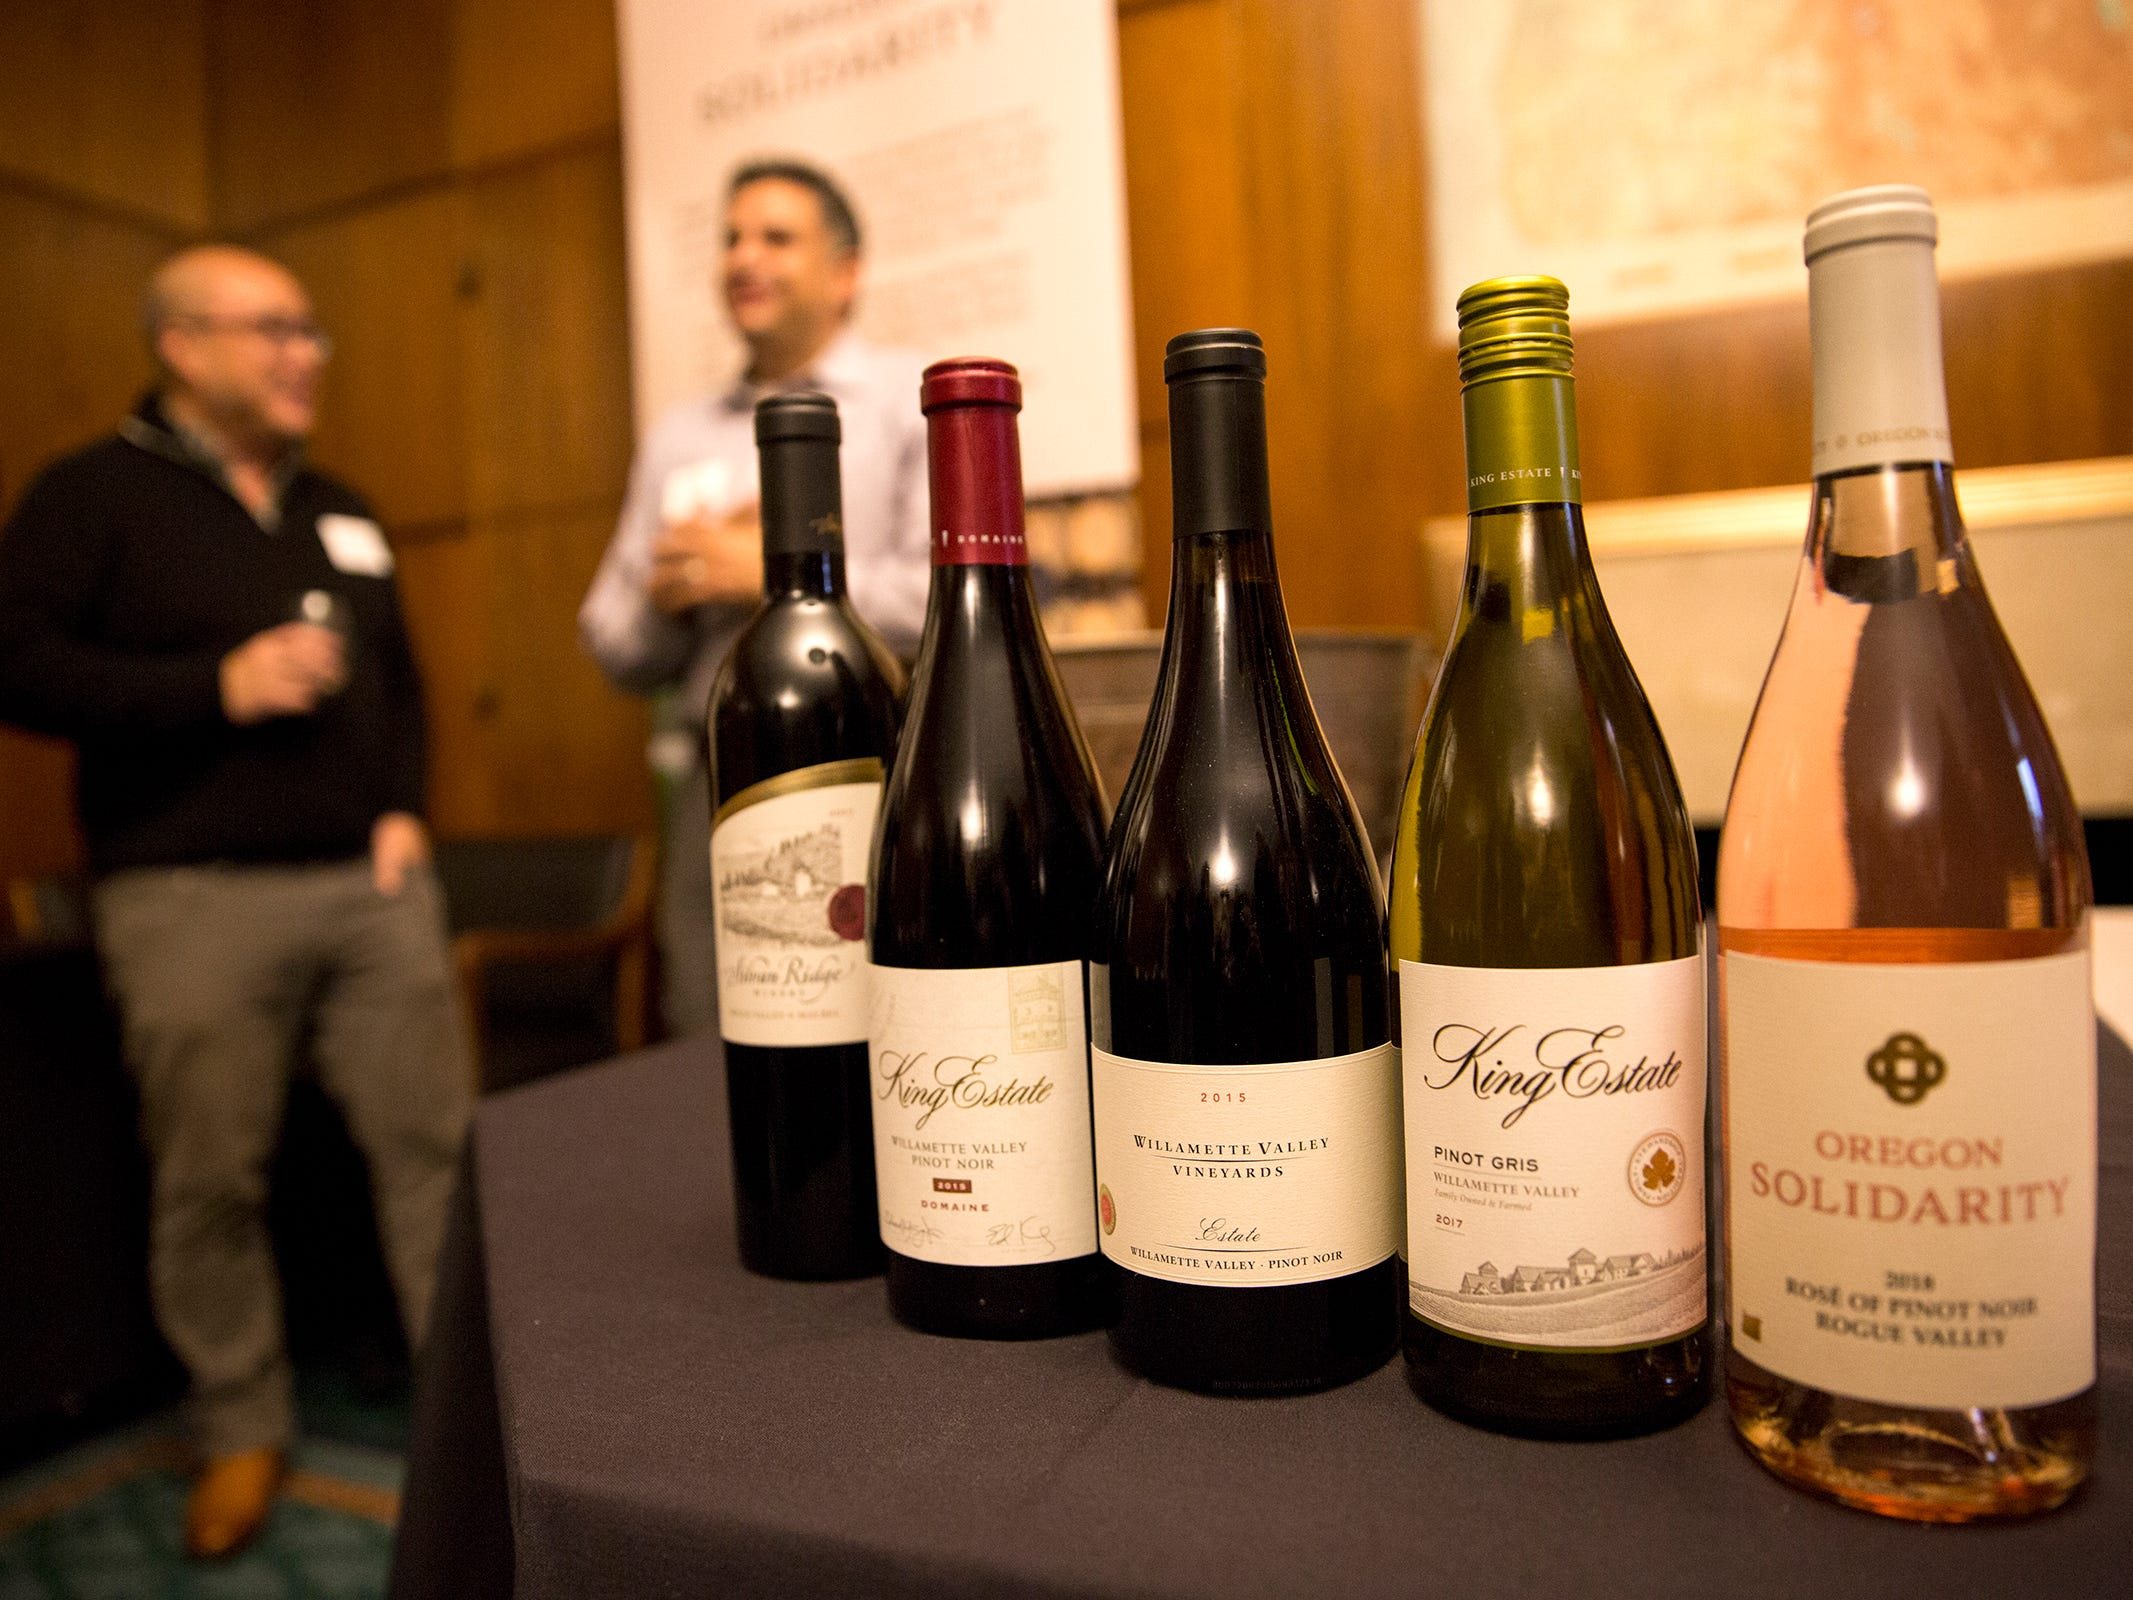 Wines from across Oregon are pictured at a release party for the Oregon Solidarity Rose of Pinot Noir in the Governor's ceremonial office at the Oregon State Capitol in Salem on Tuesday, March 5, 2019.